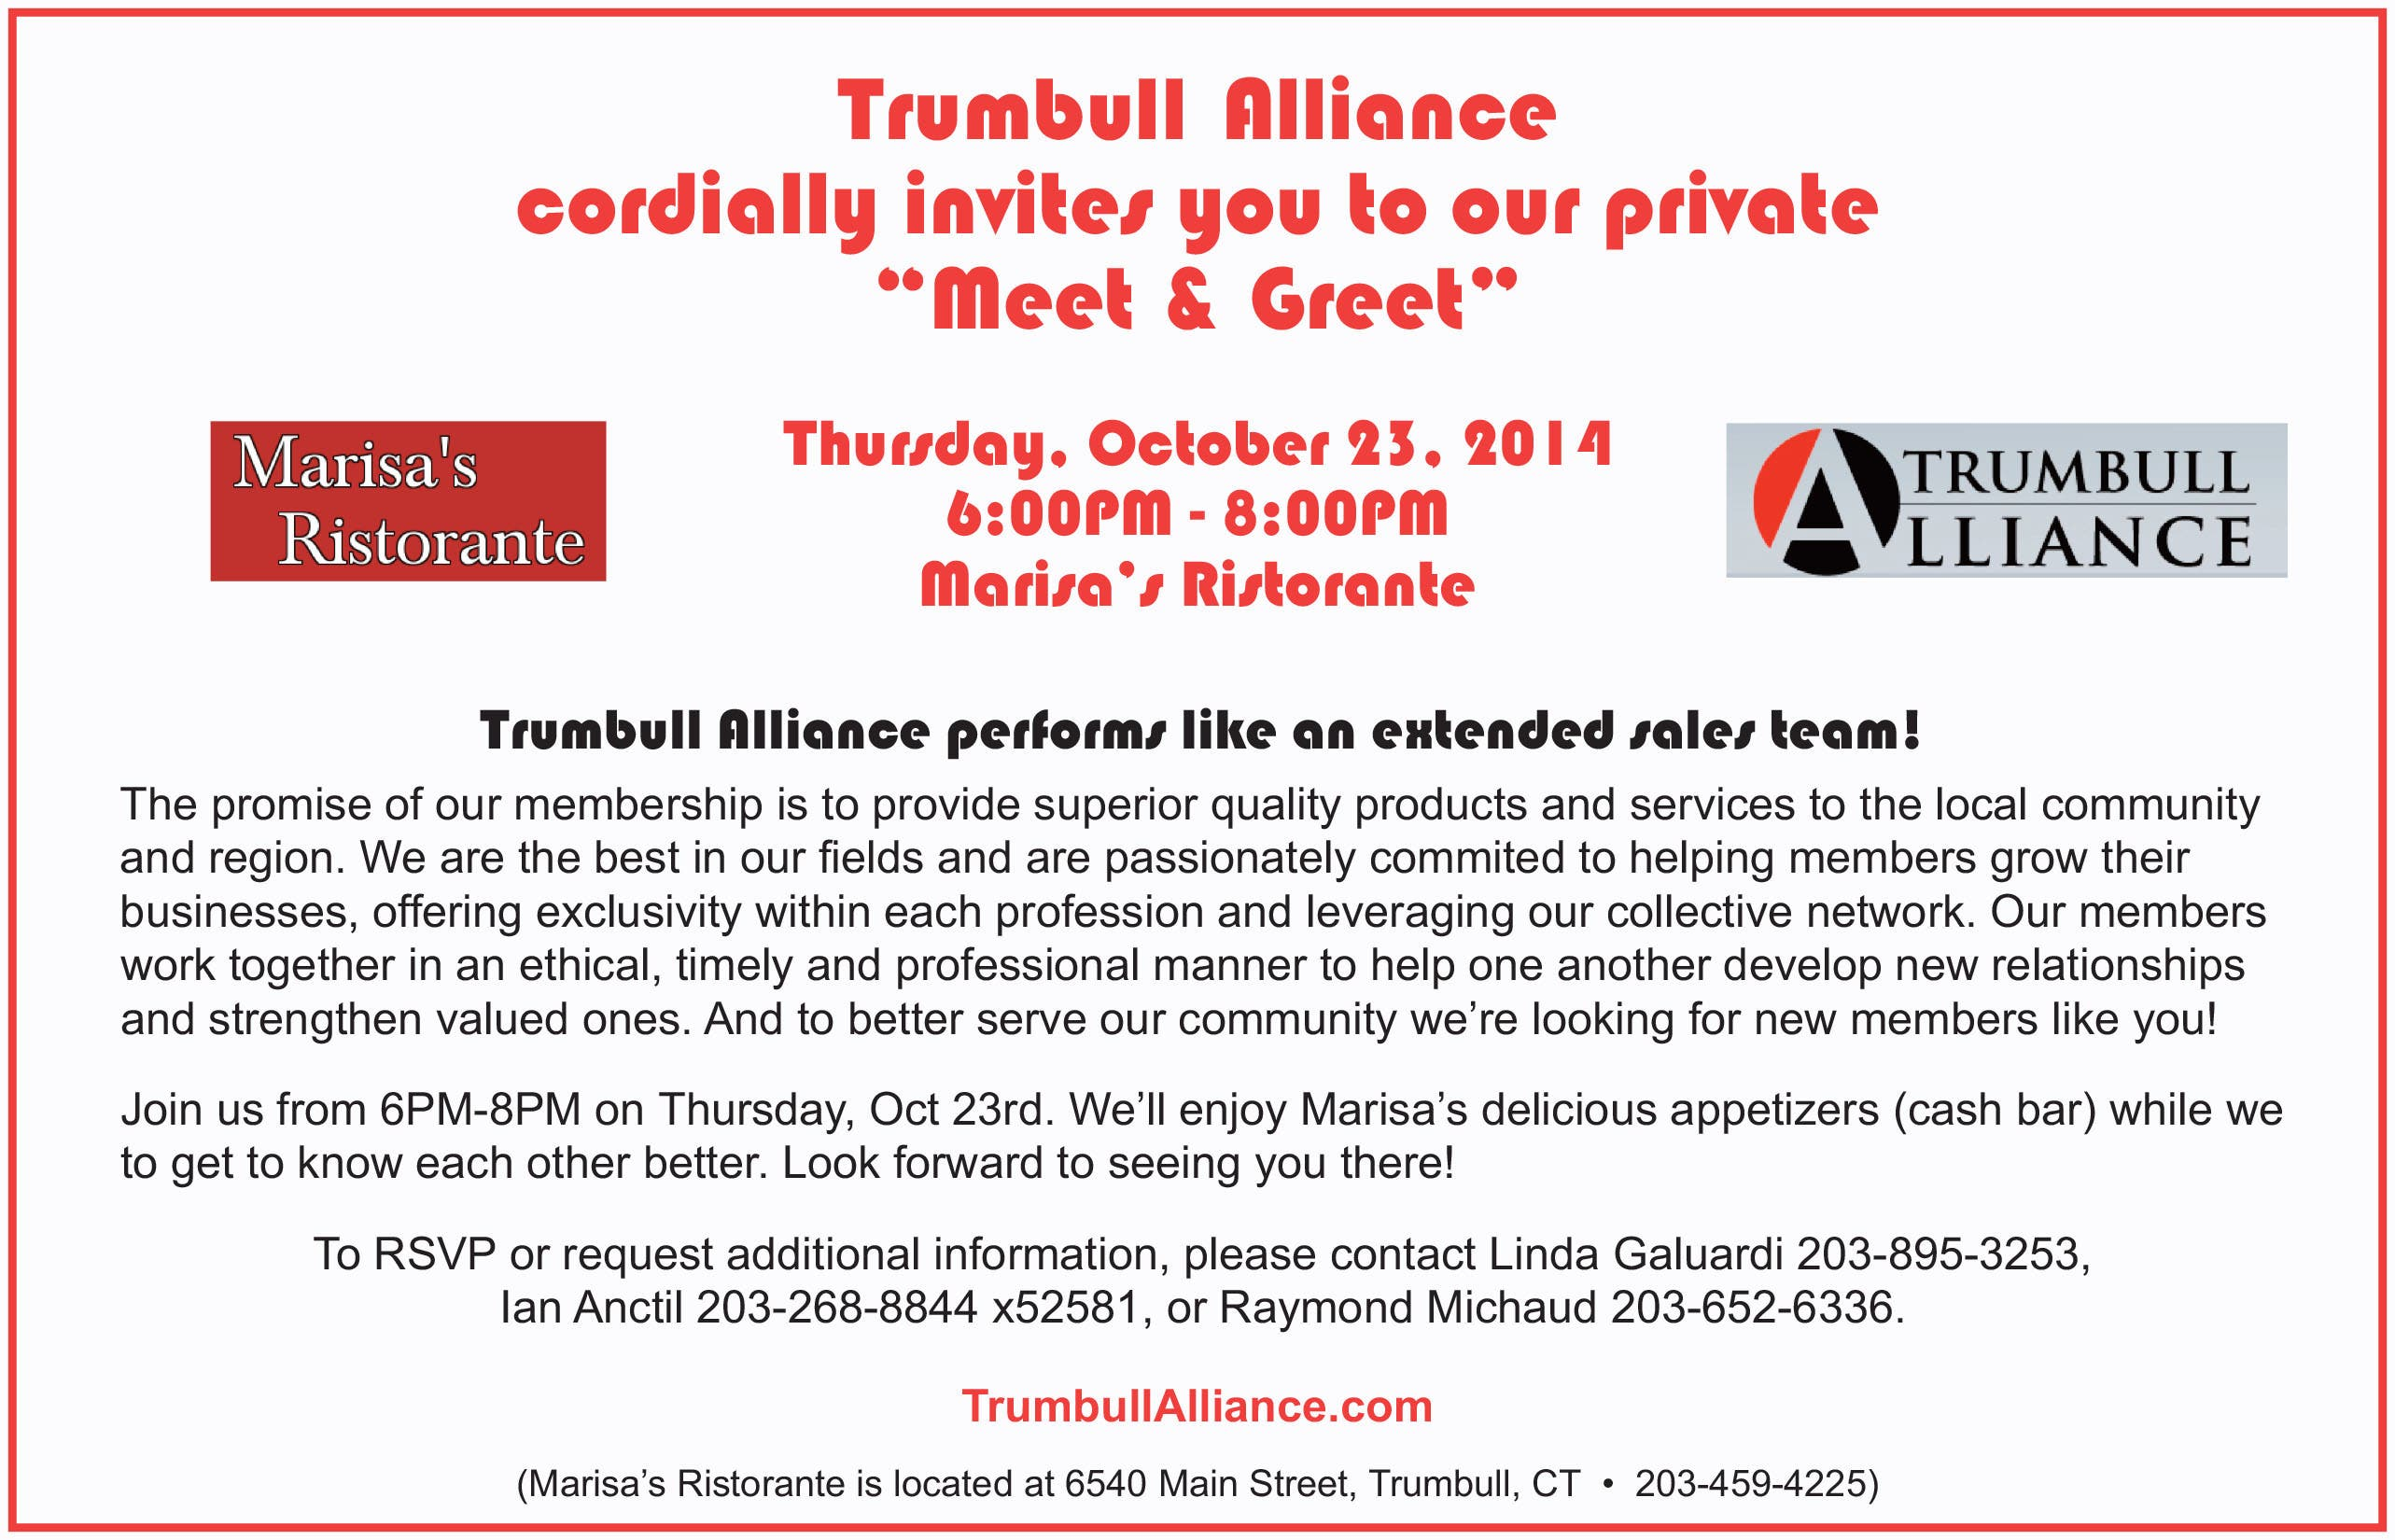 TRUMBULL ALLIANCE INVITES YOU TO